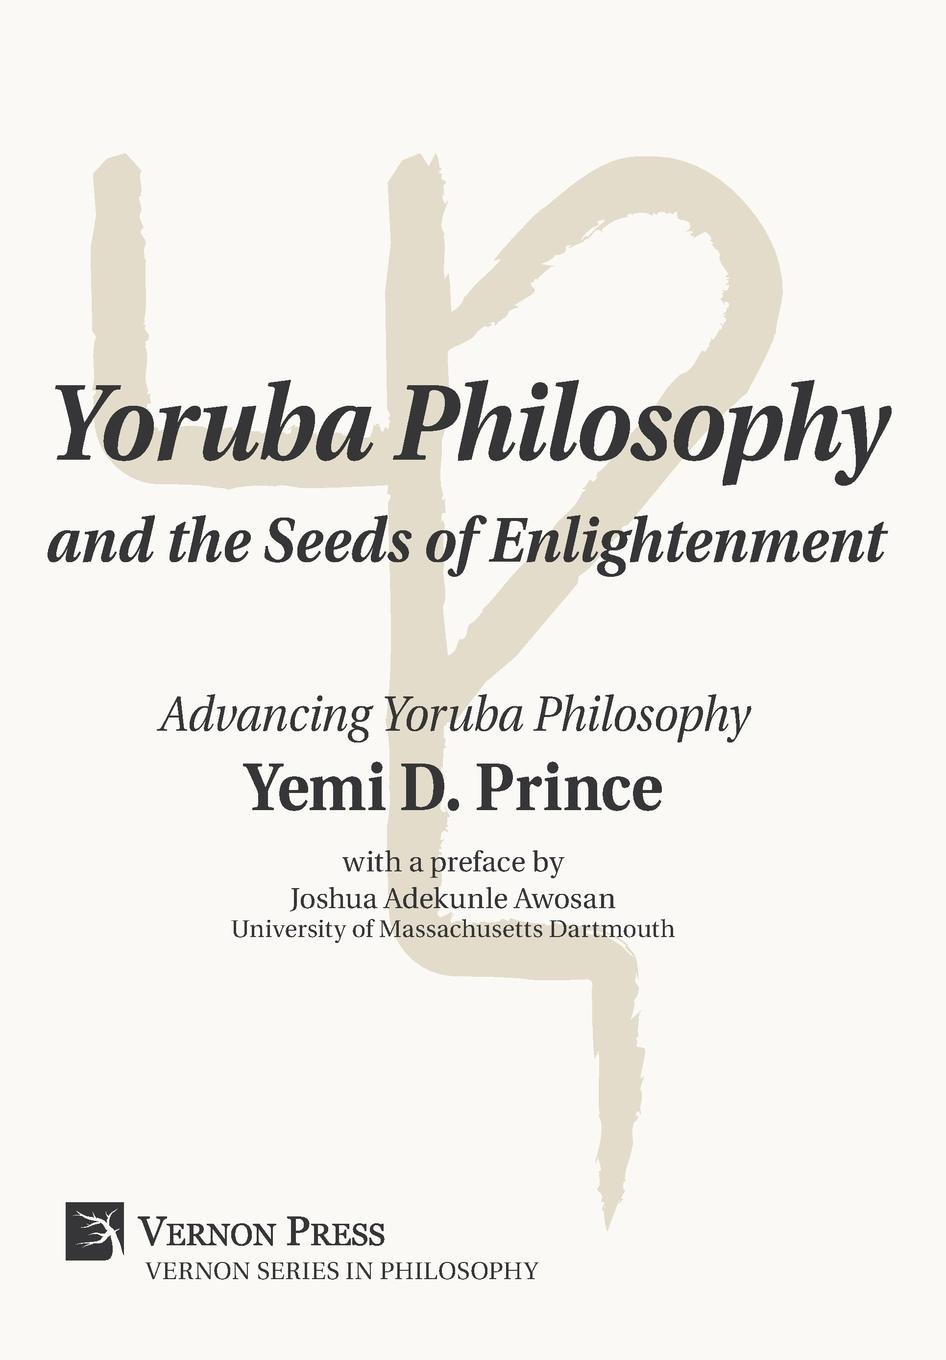 Jeddah mali seeds of enlightenment free download.